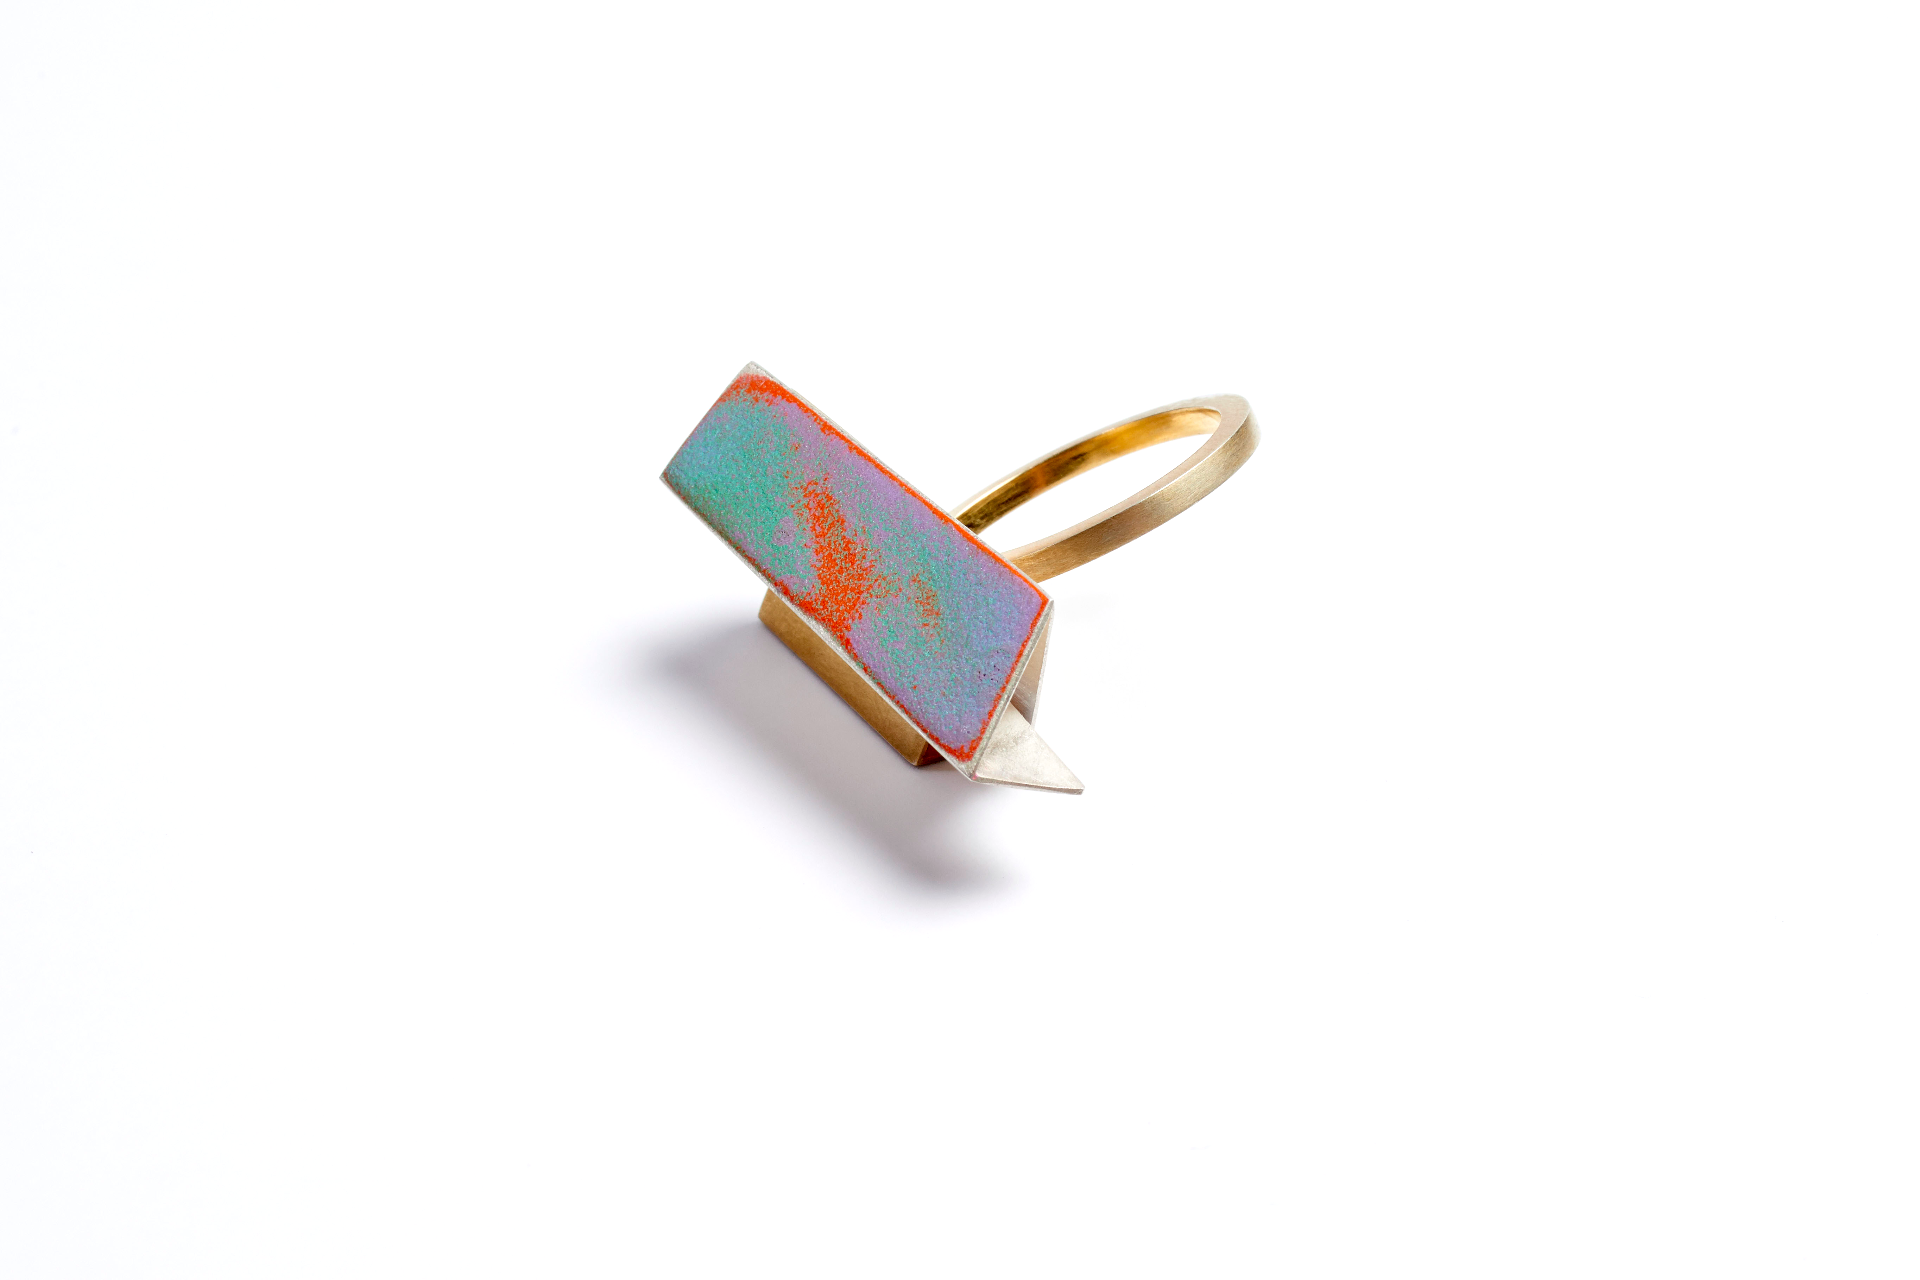 Architectural Riveted Ring